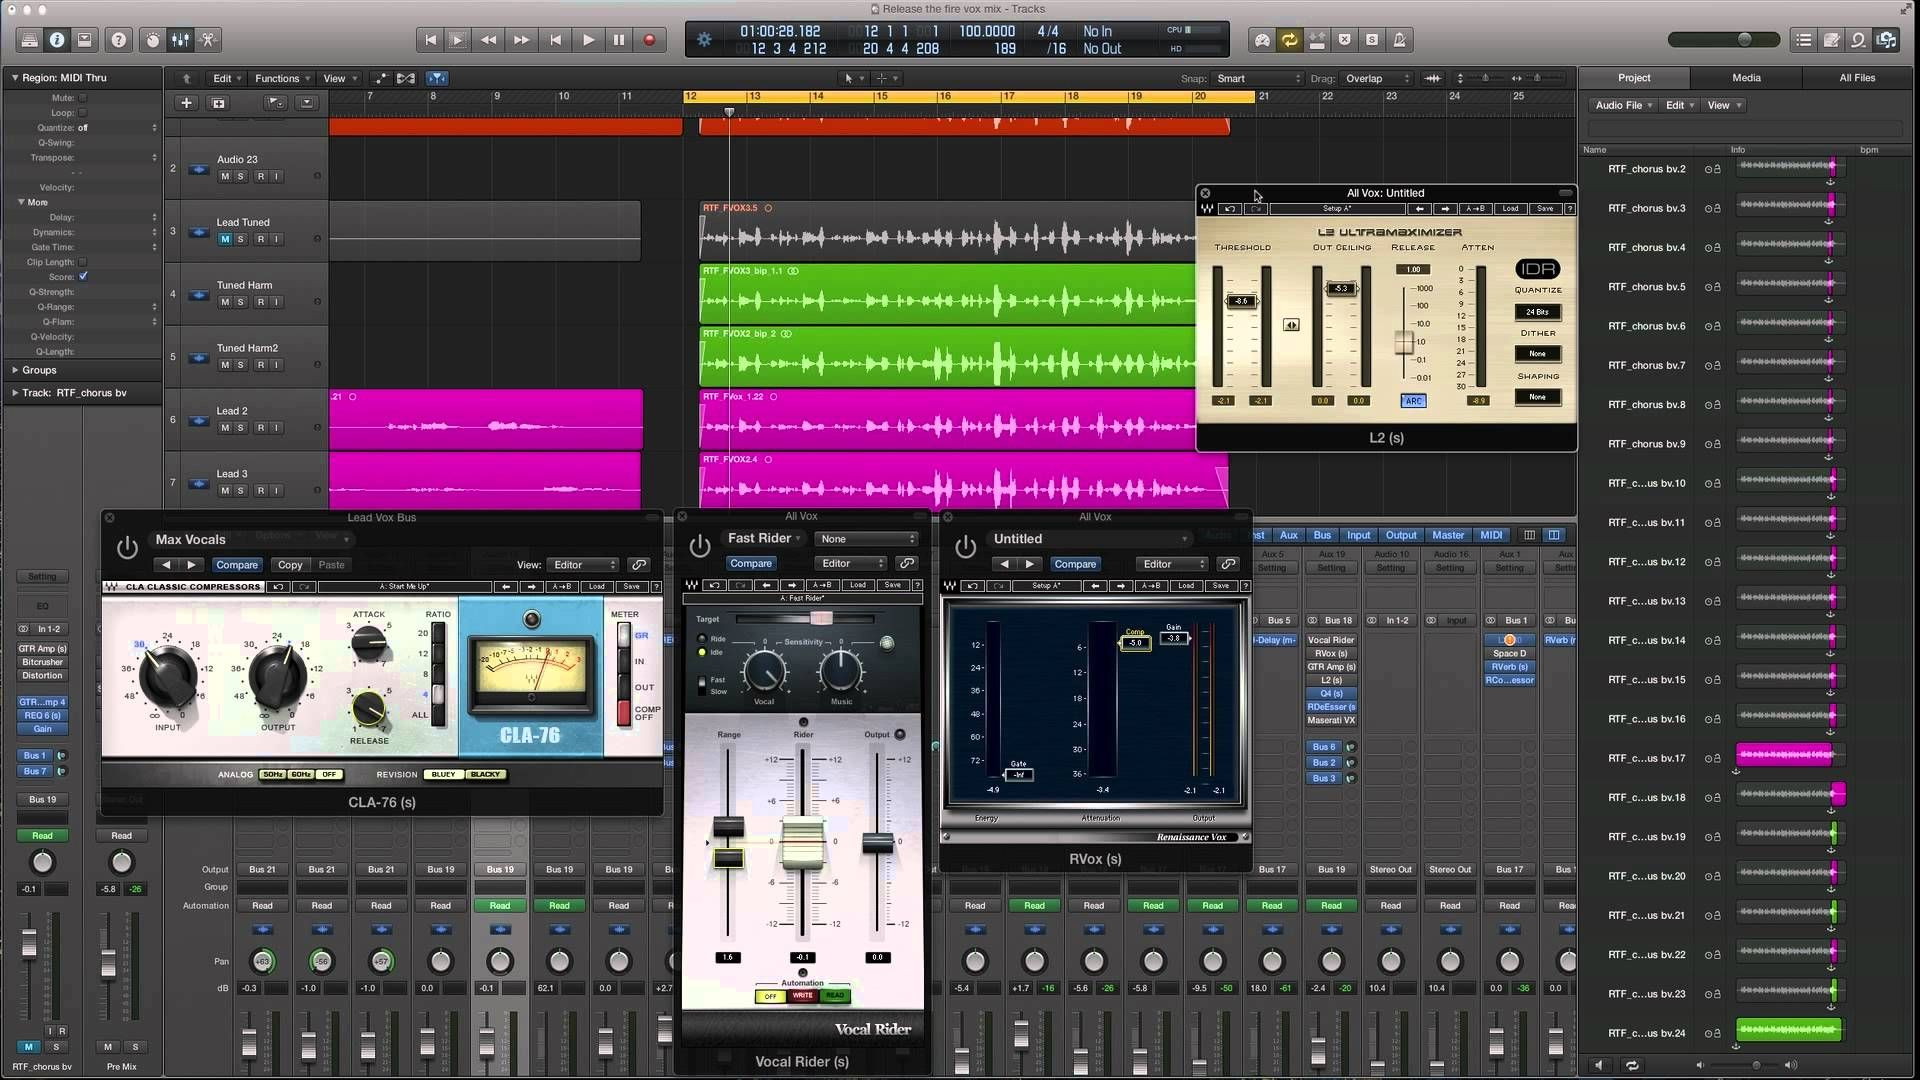 92d4ce107b5cd88c8d727329af7e5a09 - How To Get Good Vocals In Logic Pro X